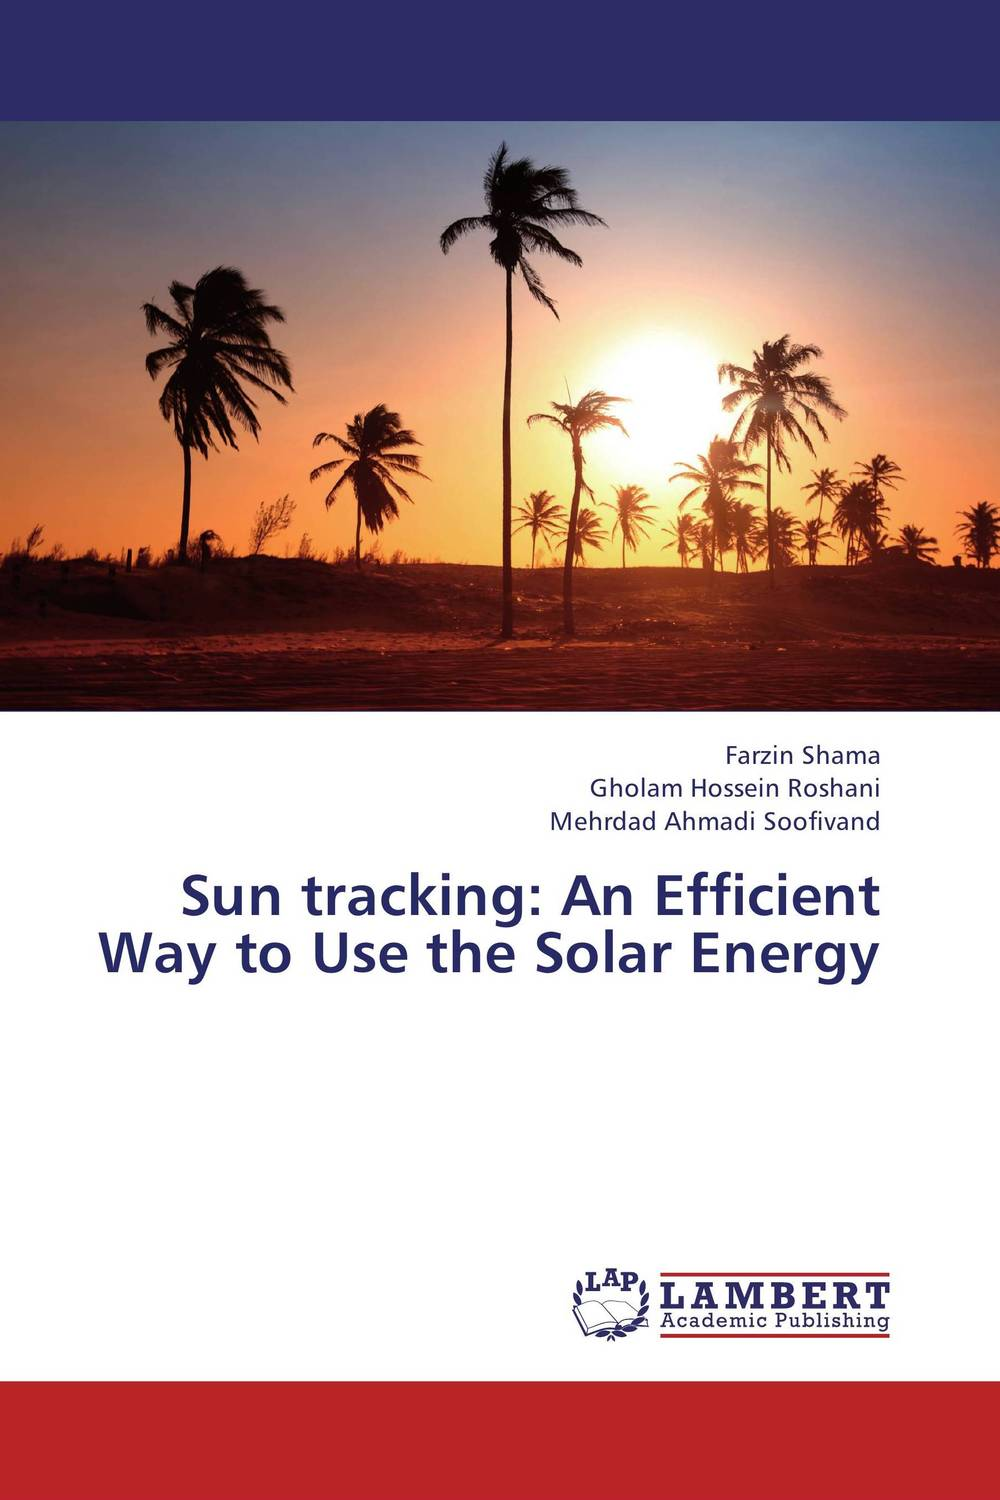 Sun tracking: An Efficient Way to Use the Solar Energy jen fei loh and sujan debnath origami and its application in solar panel design